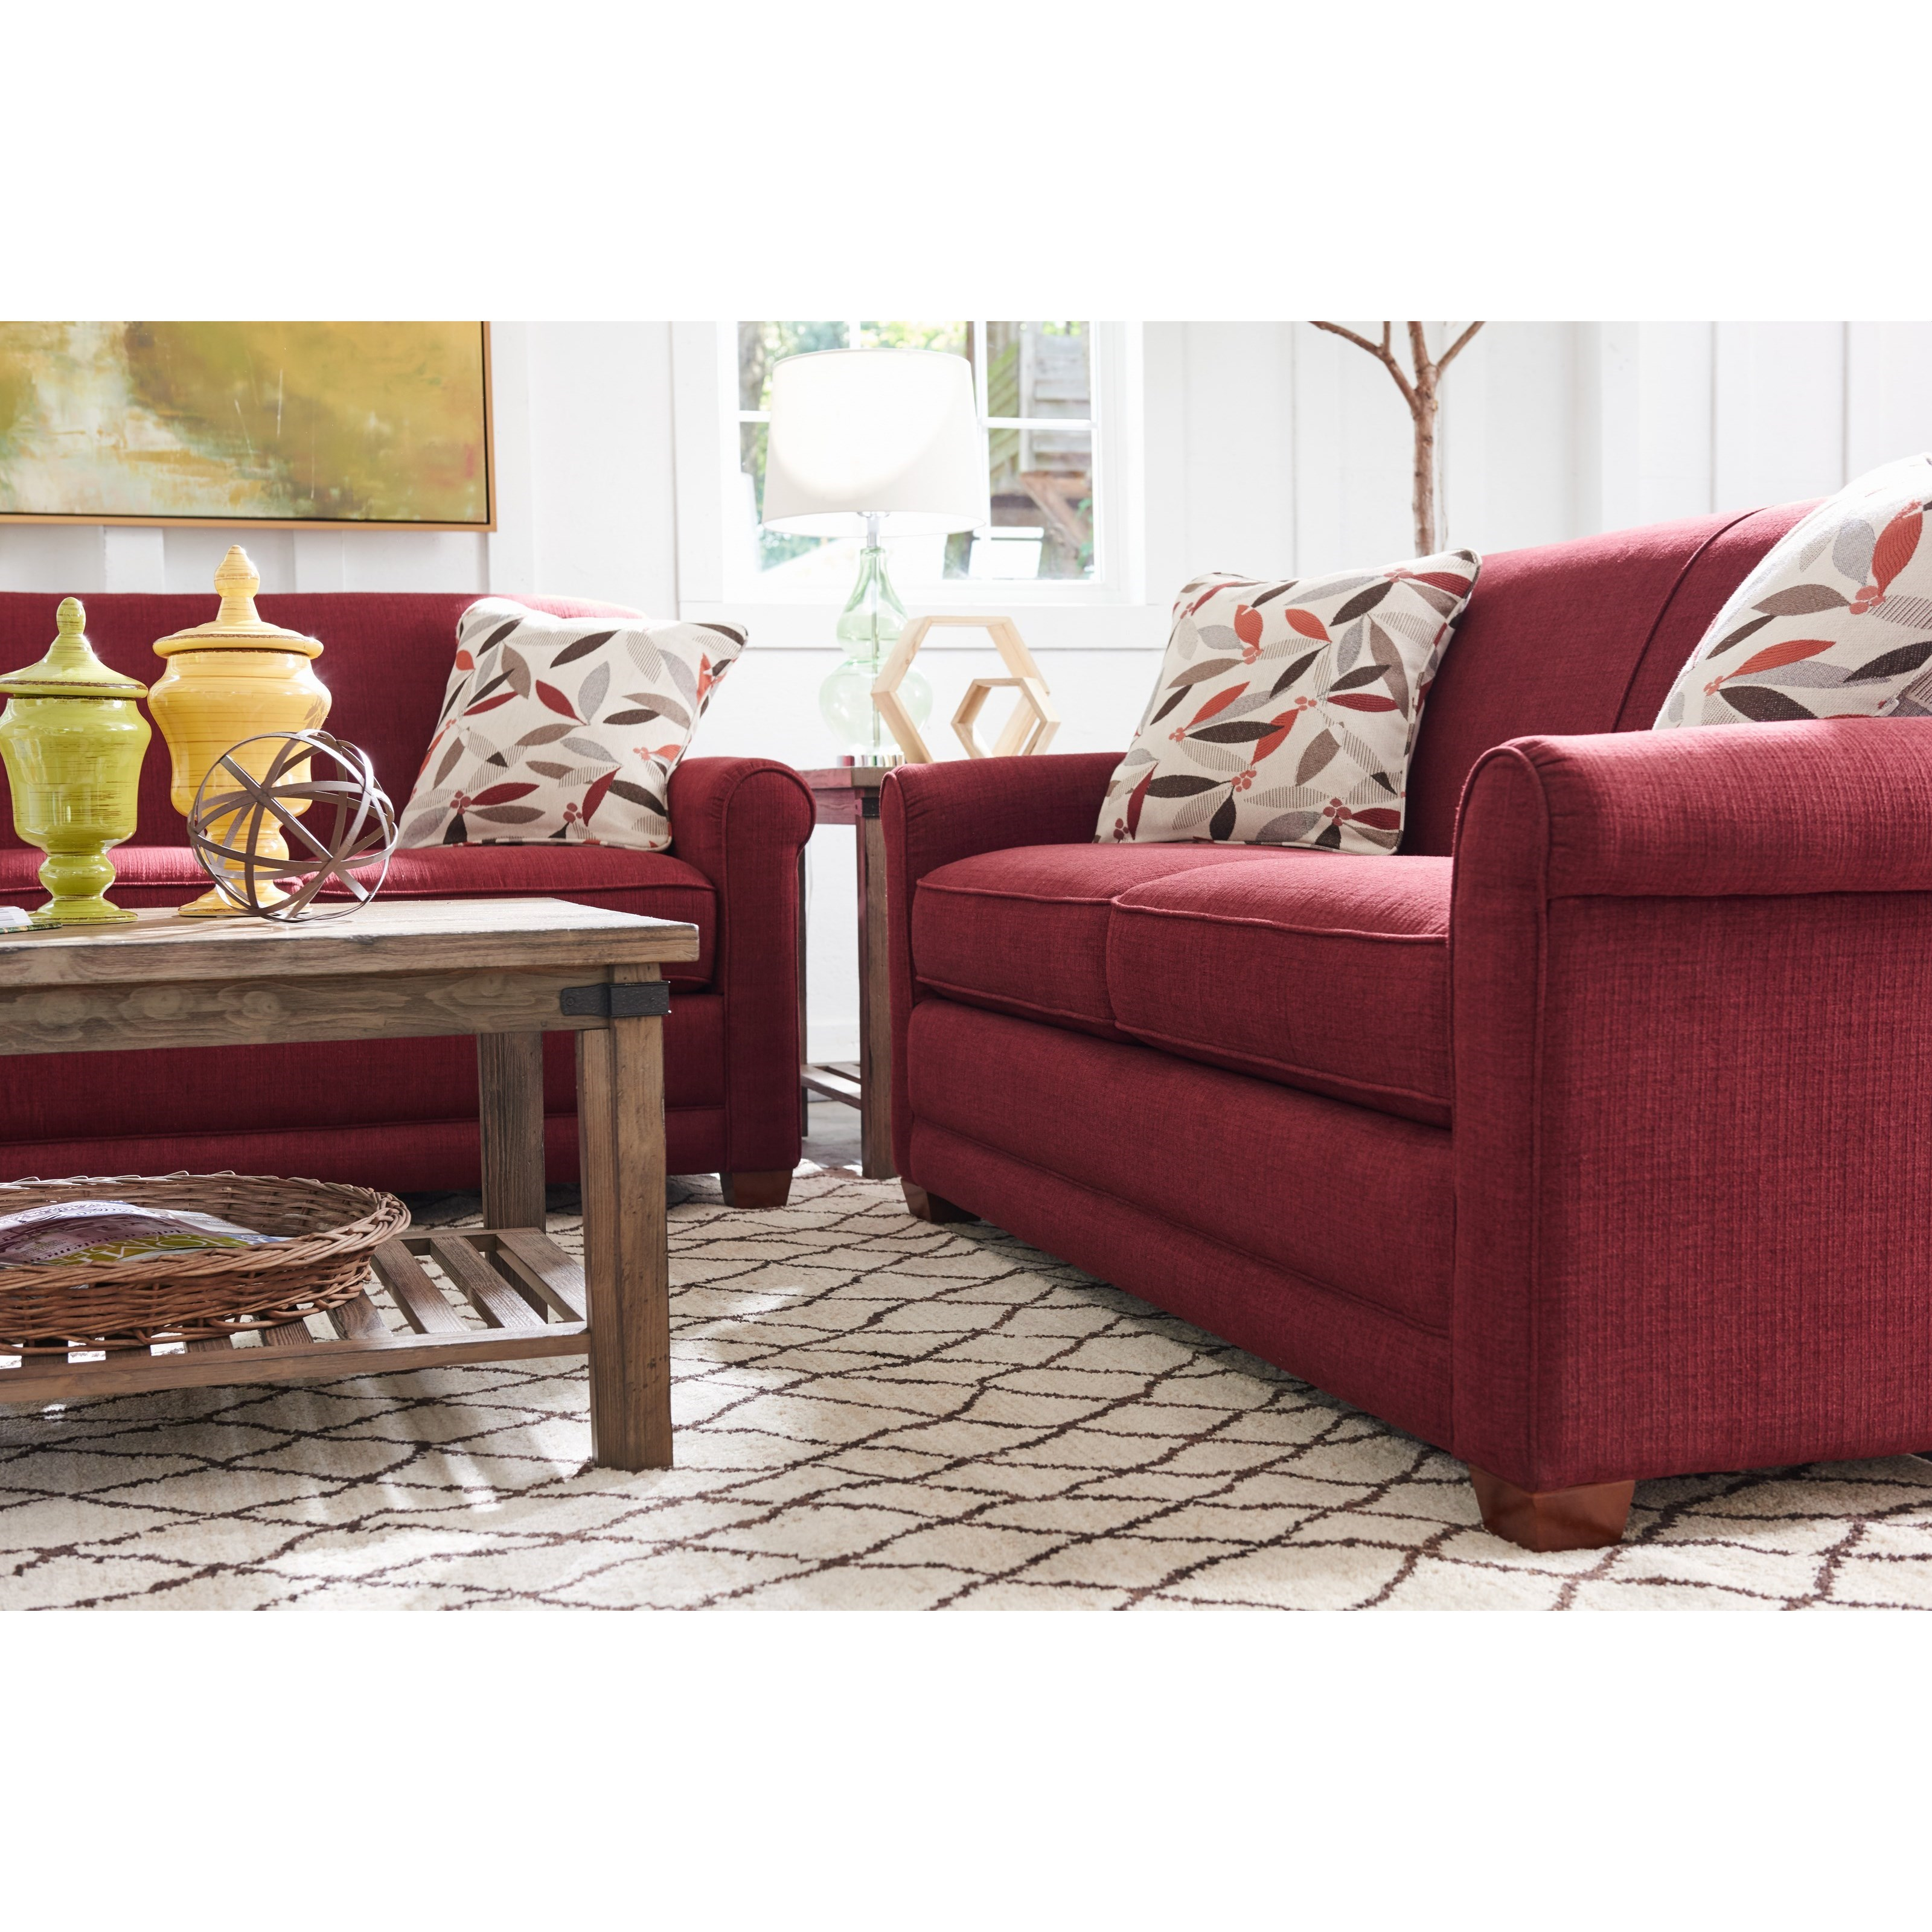 La z boy amanda casual apartment size sofa with premier for Apartment size furniture